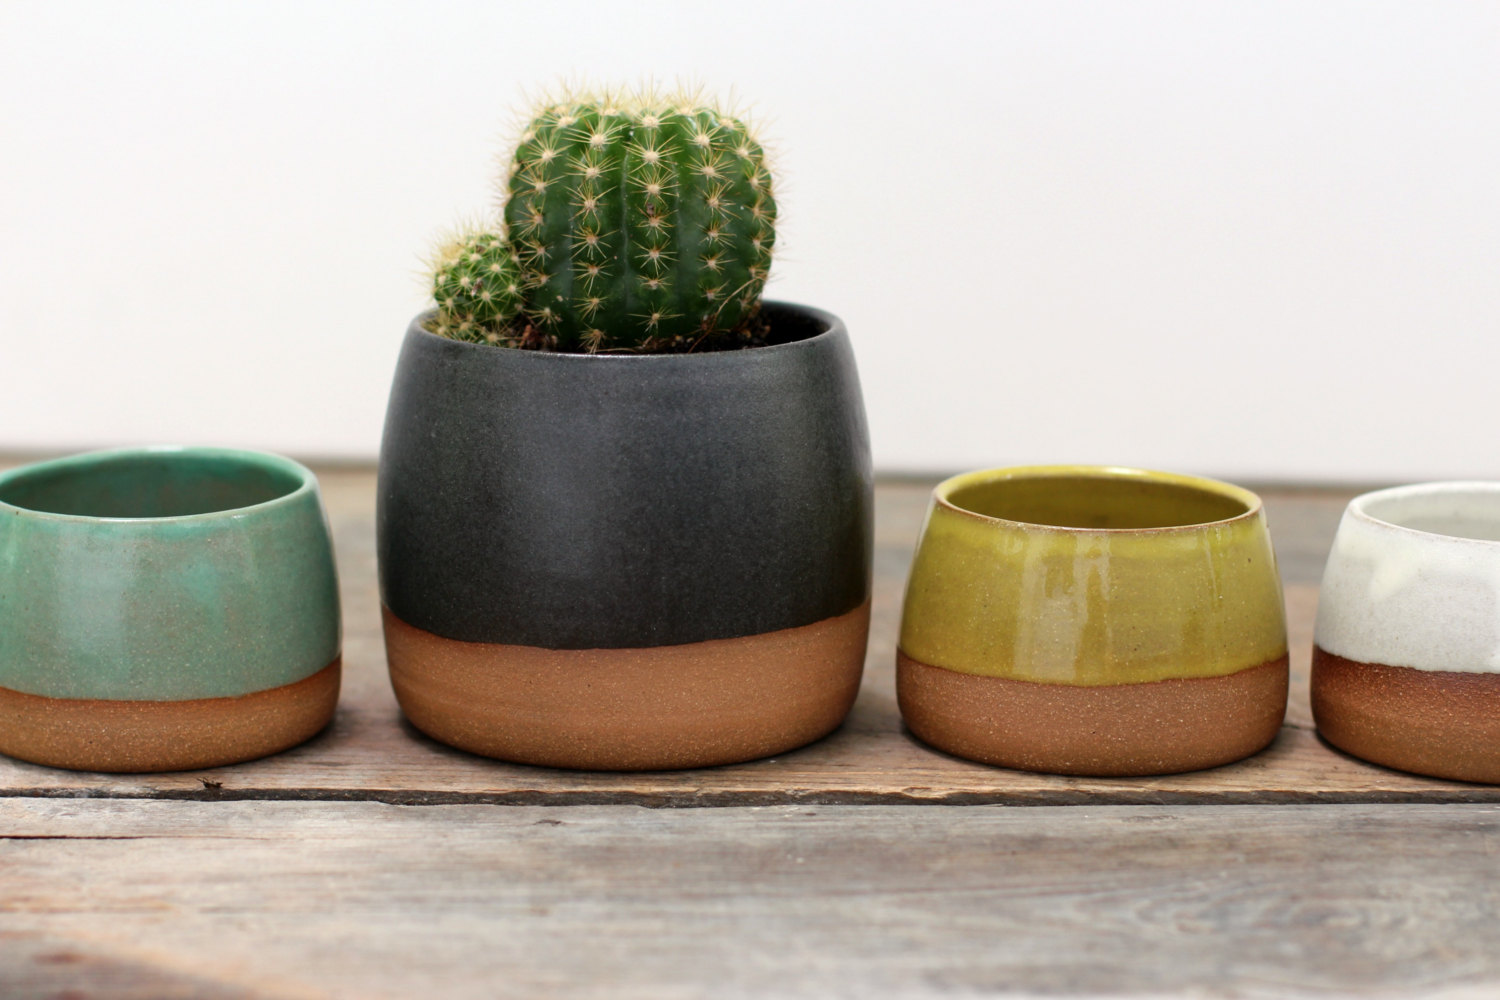 15 Cute Handmade Planter Designs That Will Freshen Up Your Decor